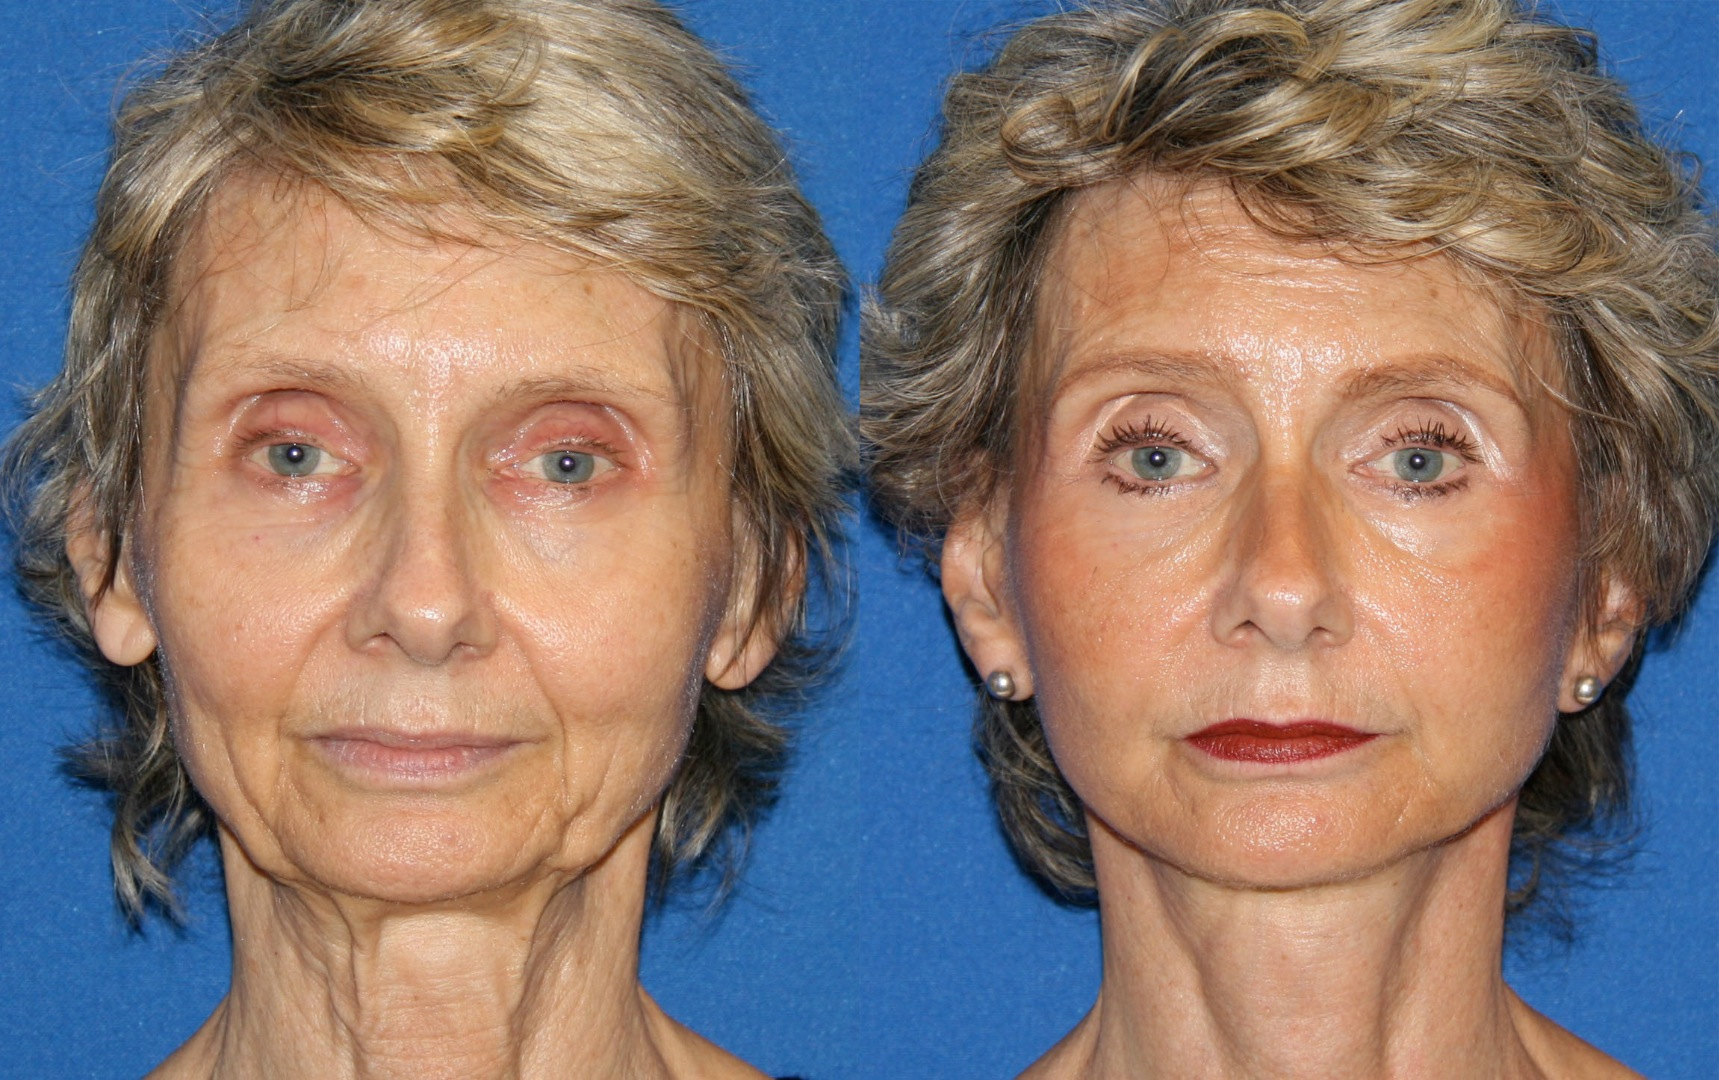 Gbefore and after facelift fat transfer